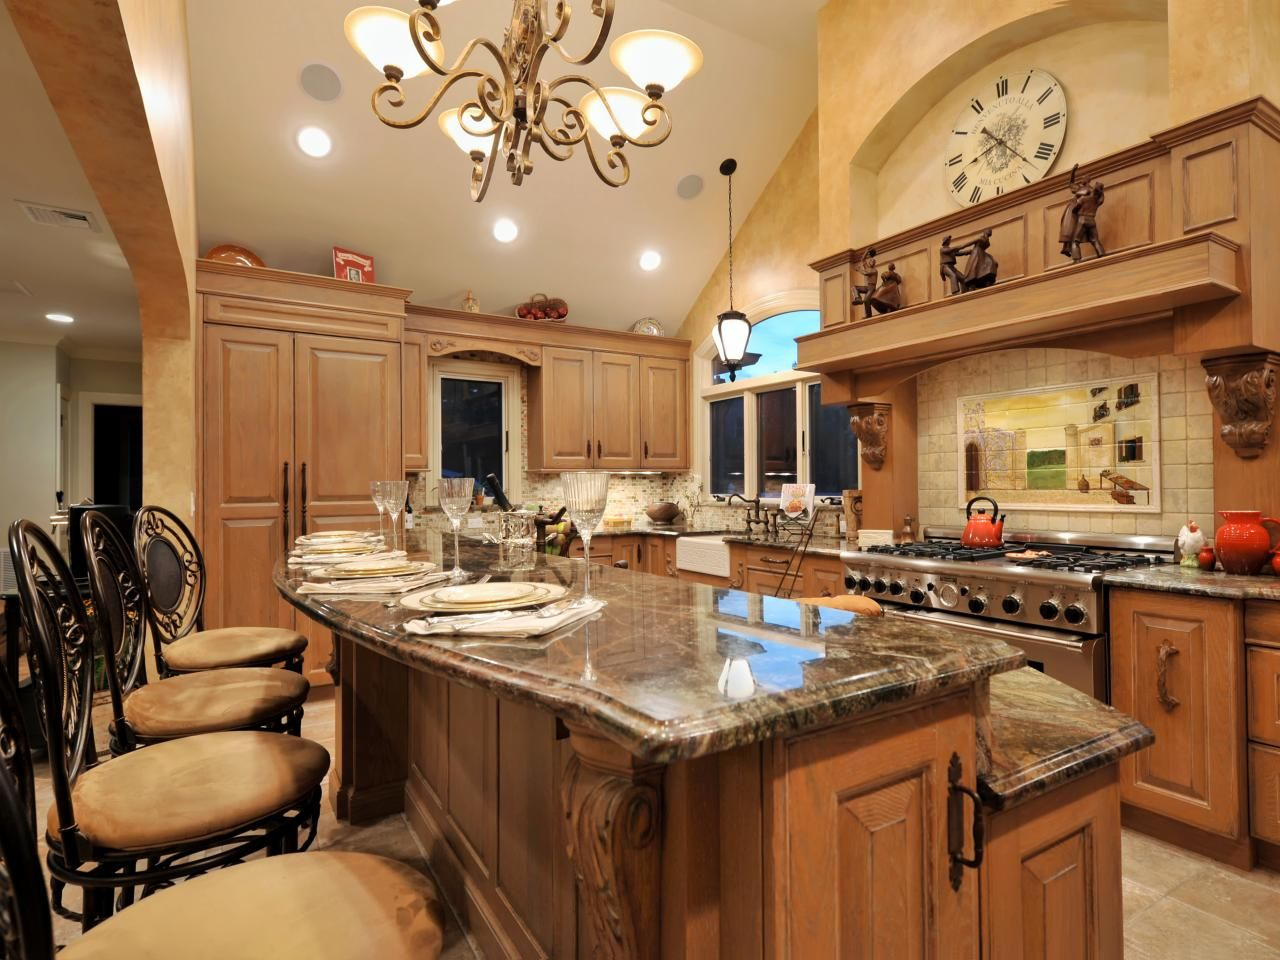 Superior A Two Tiered Kitchen Island With Granite Countertops Provides Bar Seating  For Four In This